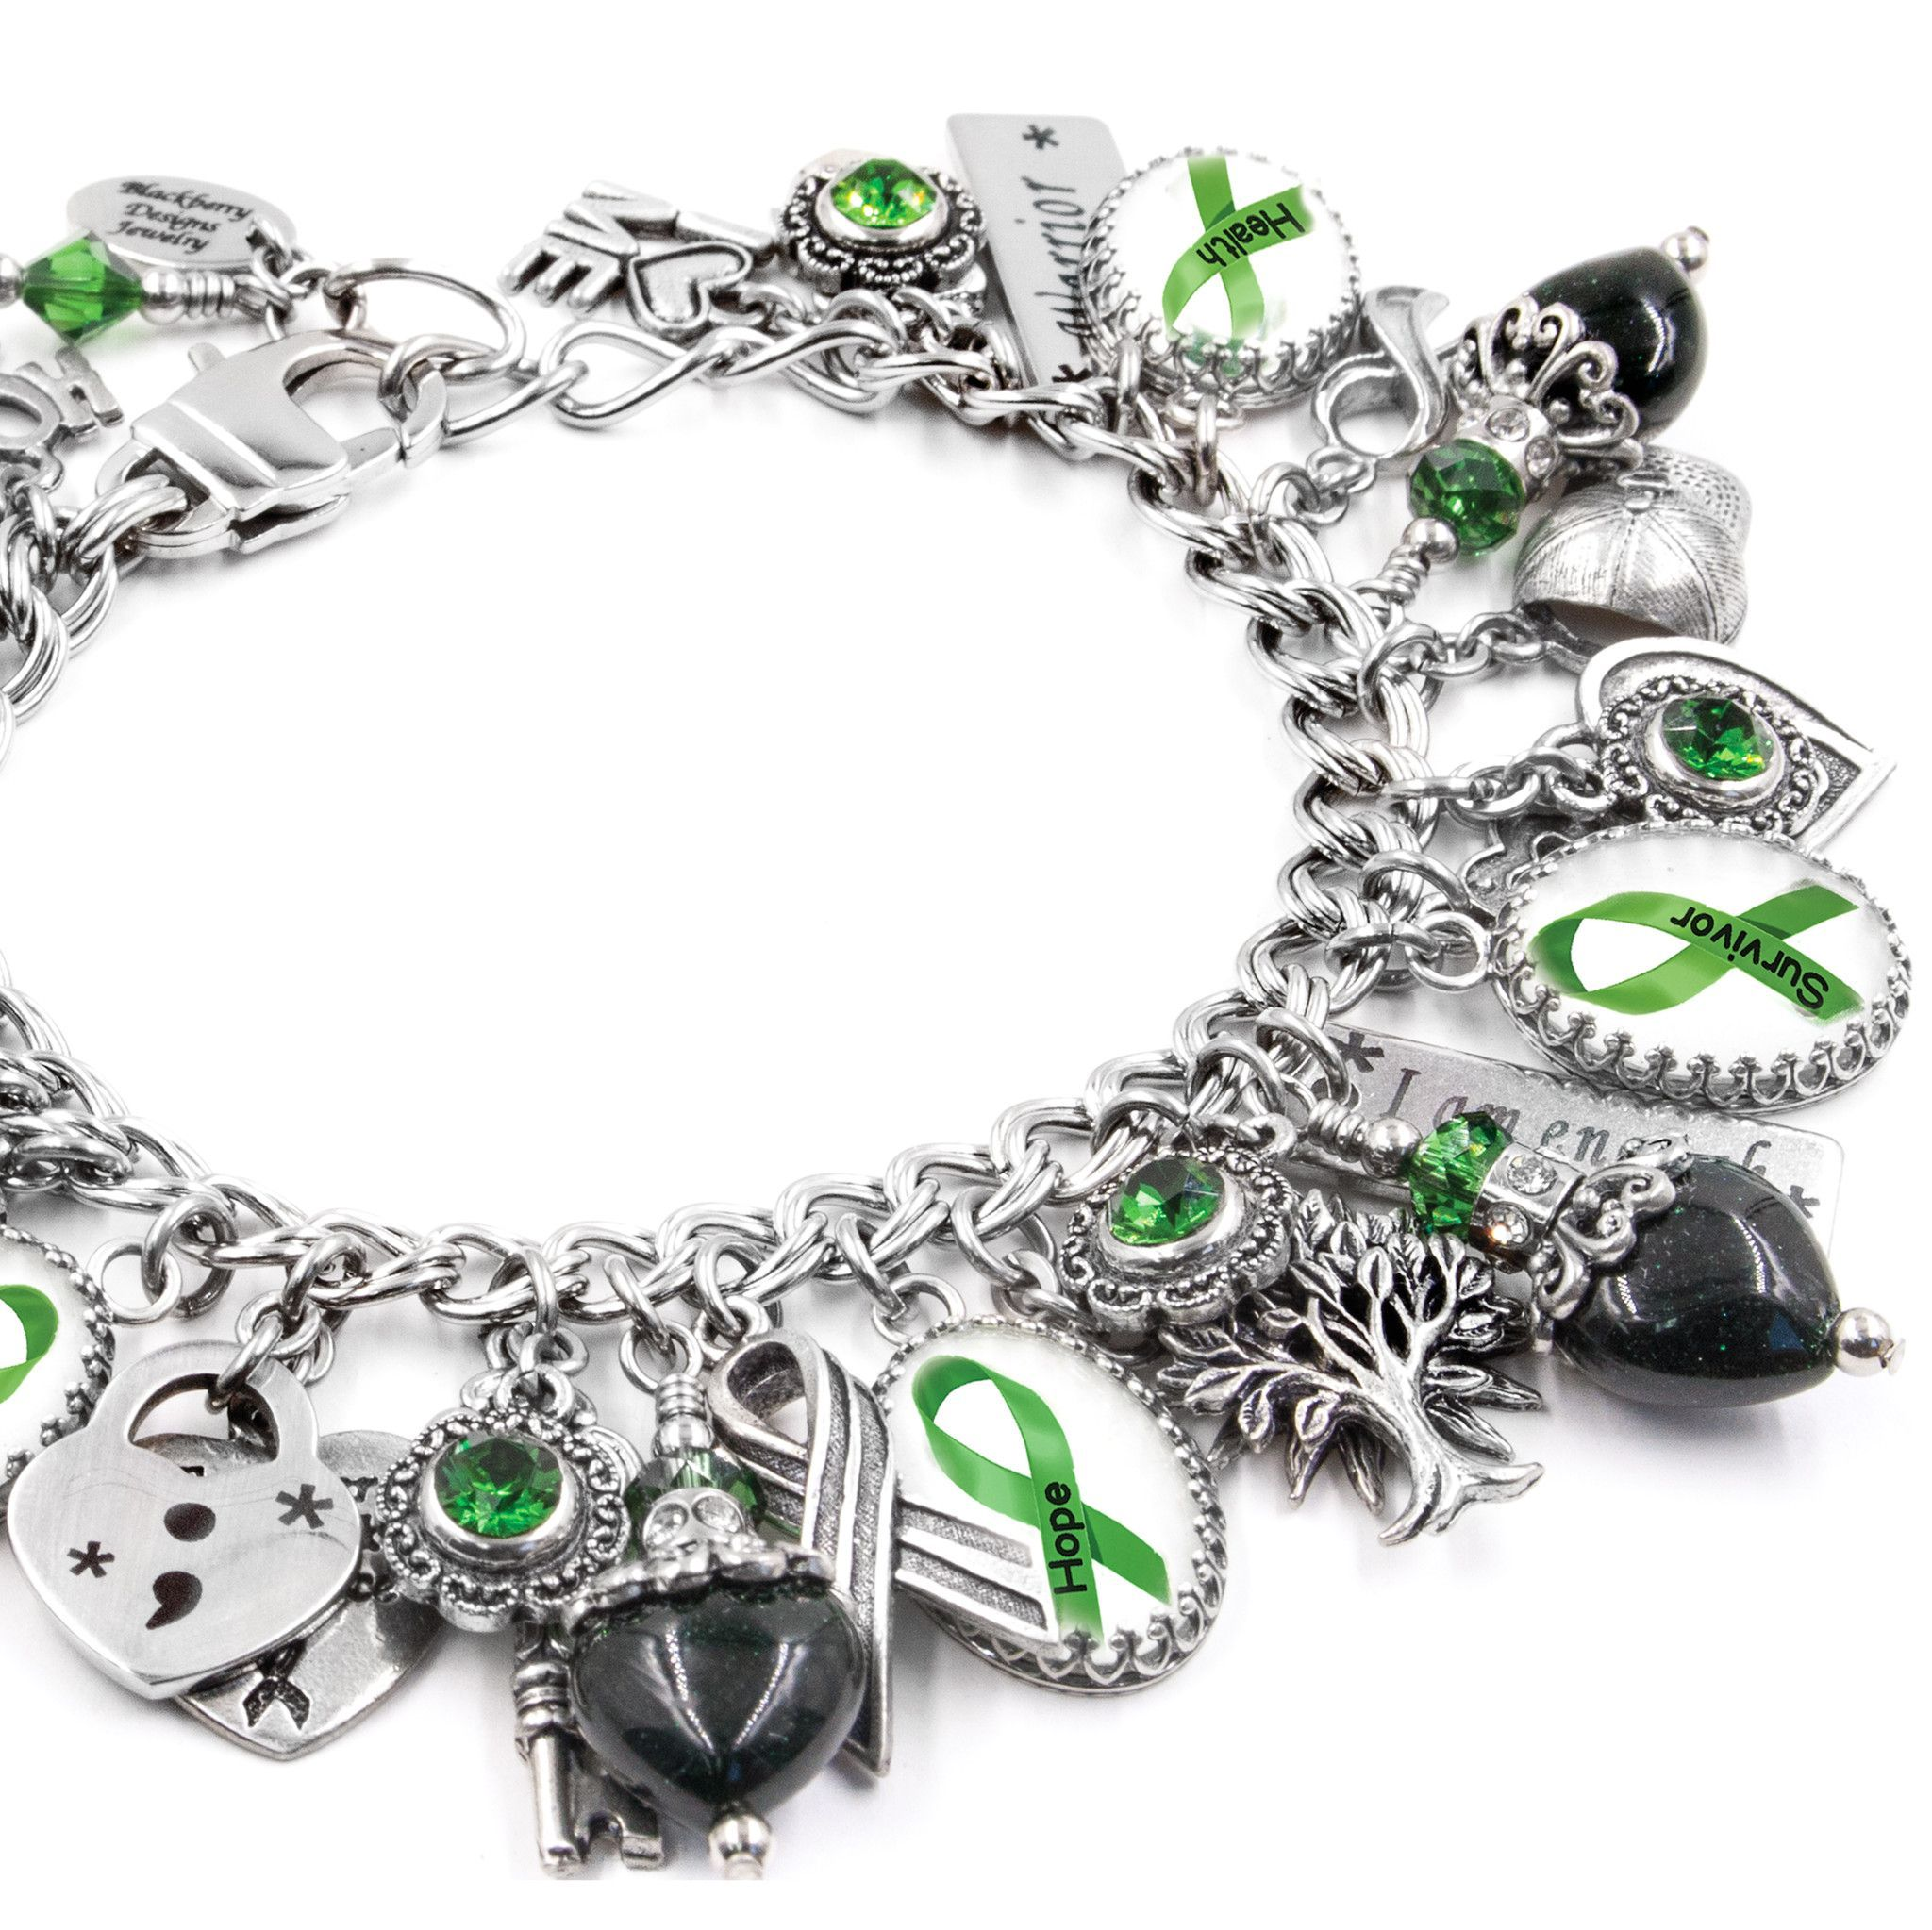 fullxfull gallery ckbd il mental jewelry images bracelet health similar awareness illness to items